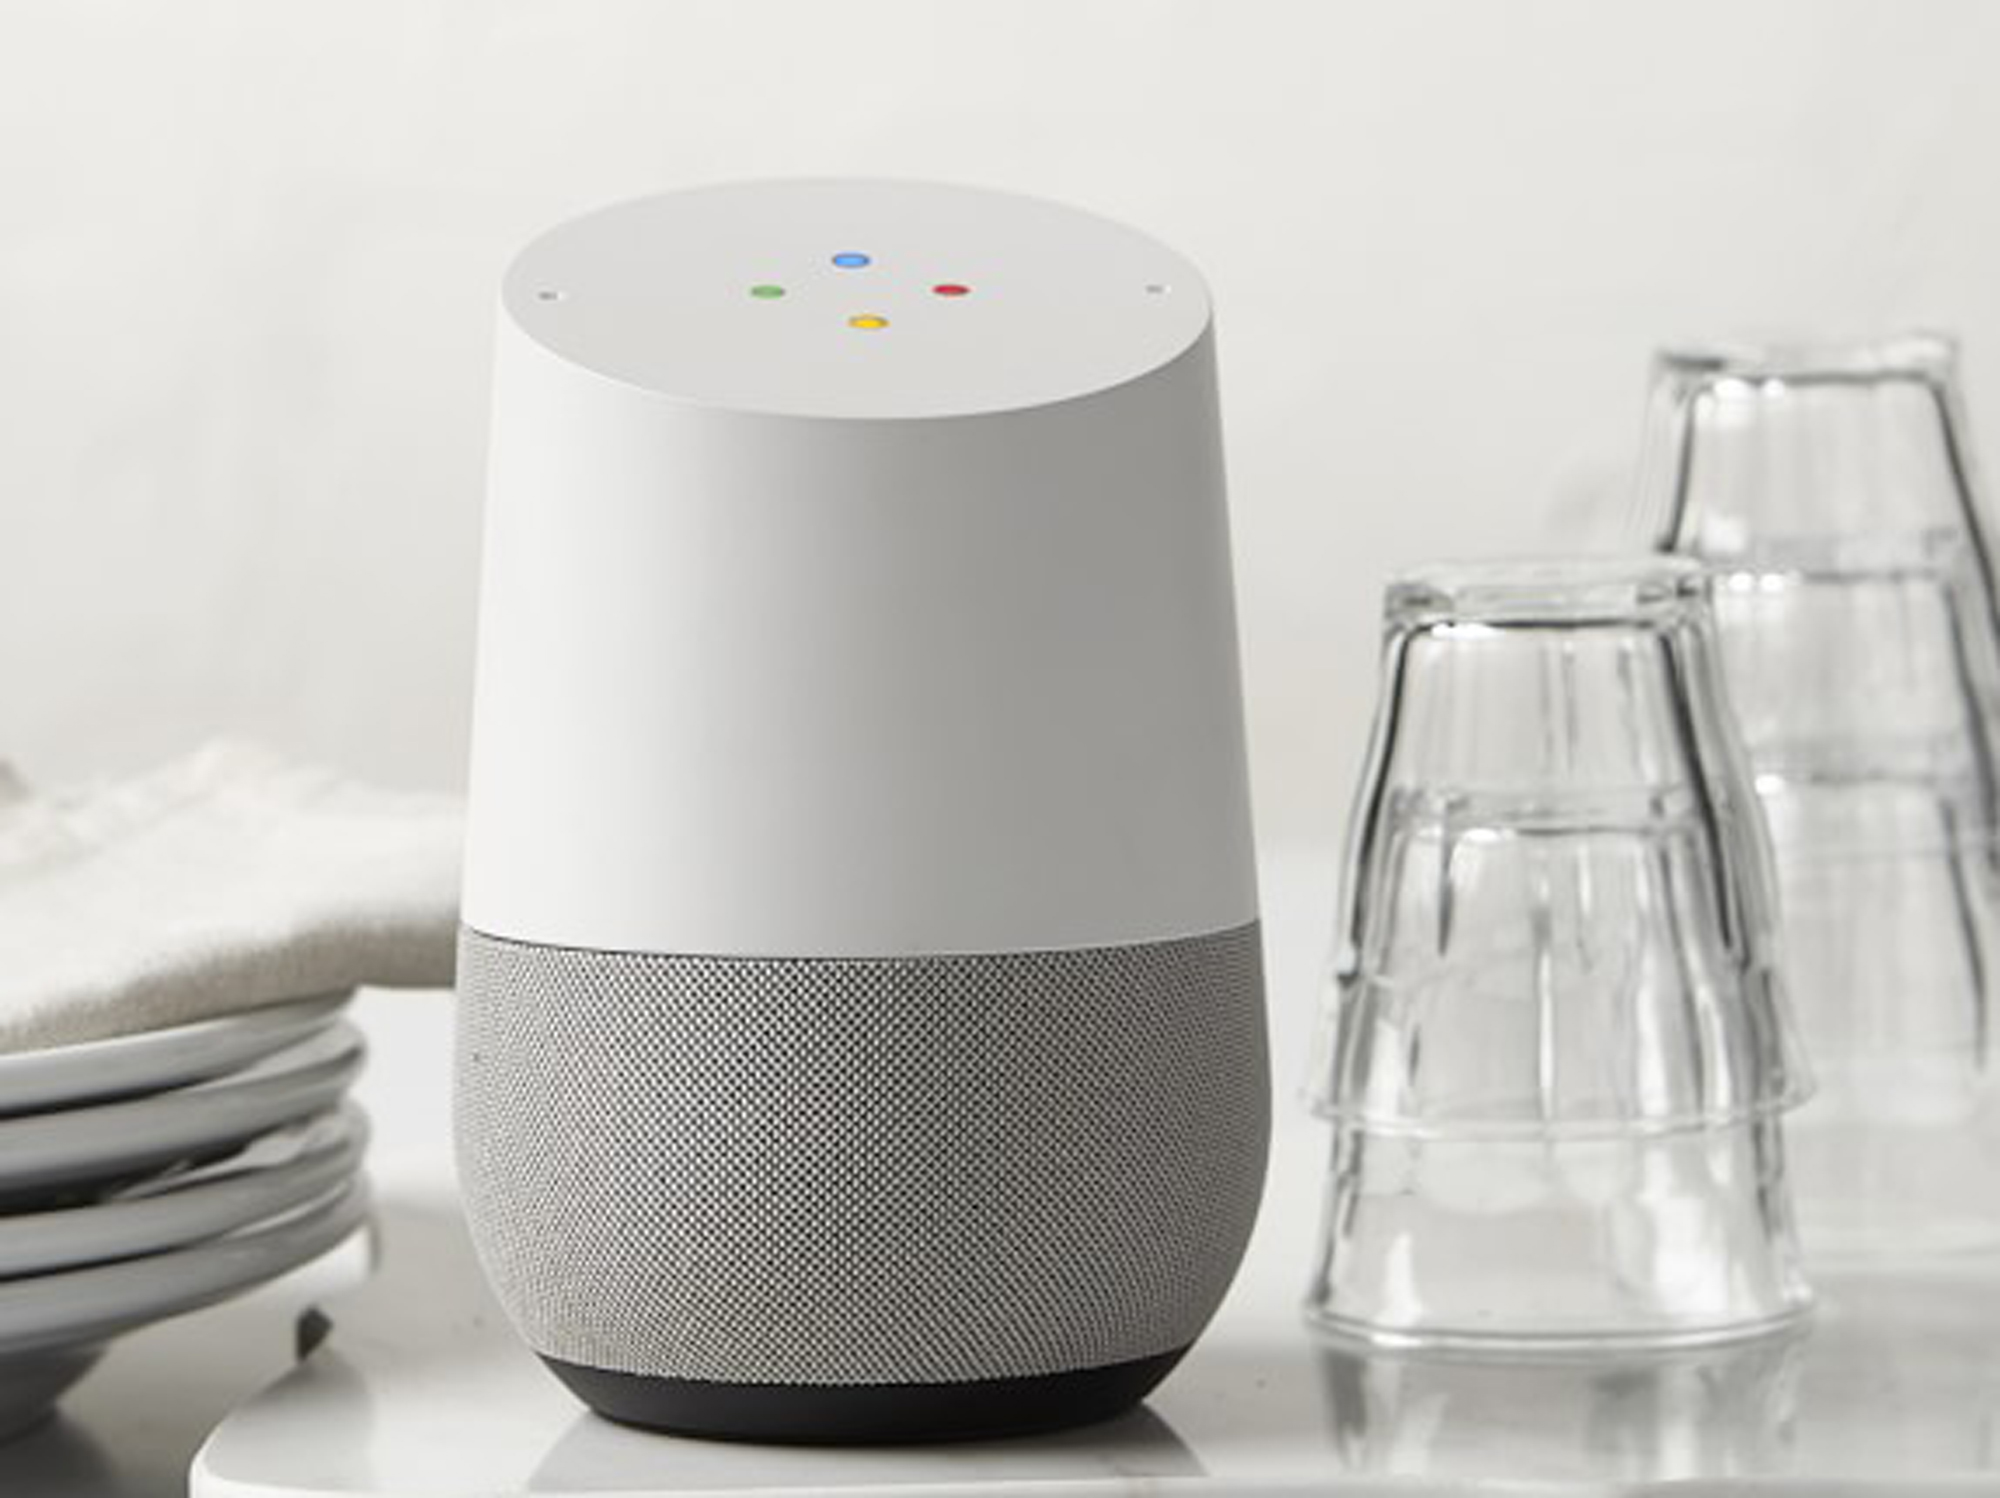 10 Ways Your Alexa or Google Home Can Make Holiday Cooking Way Less Stressful